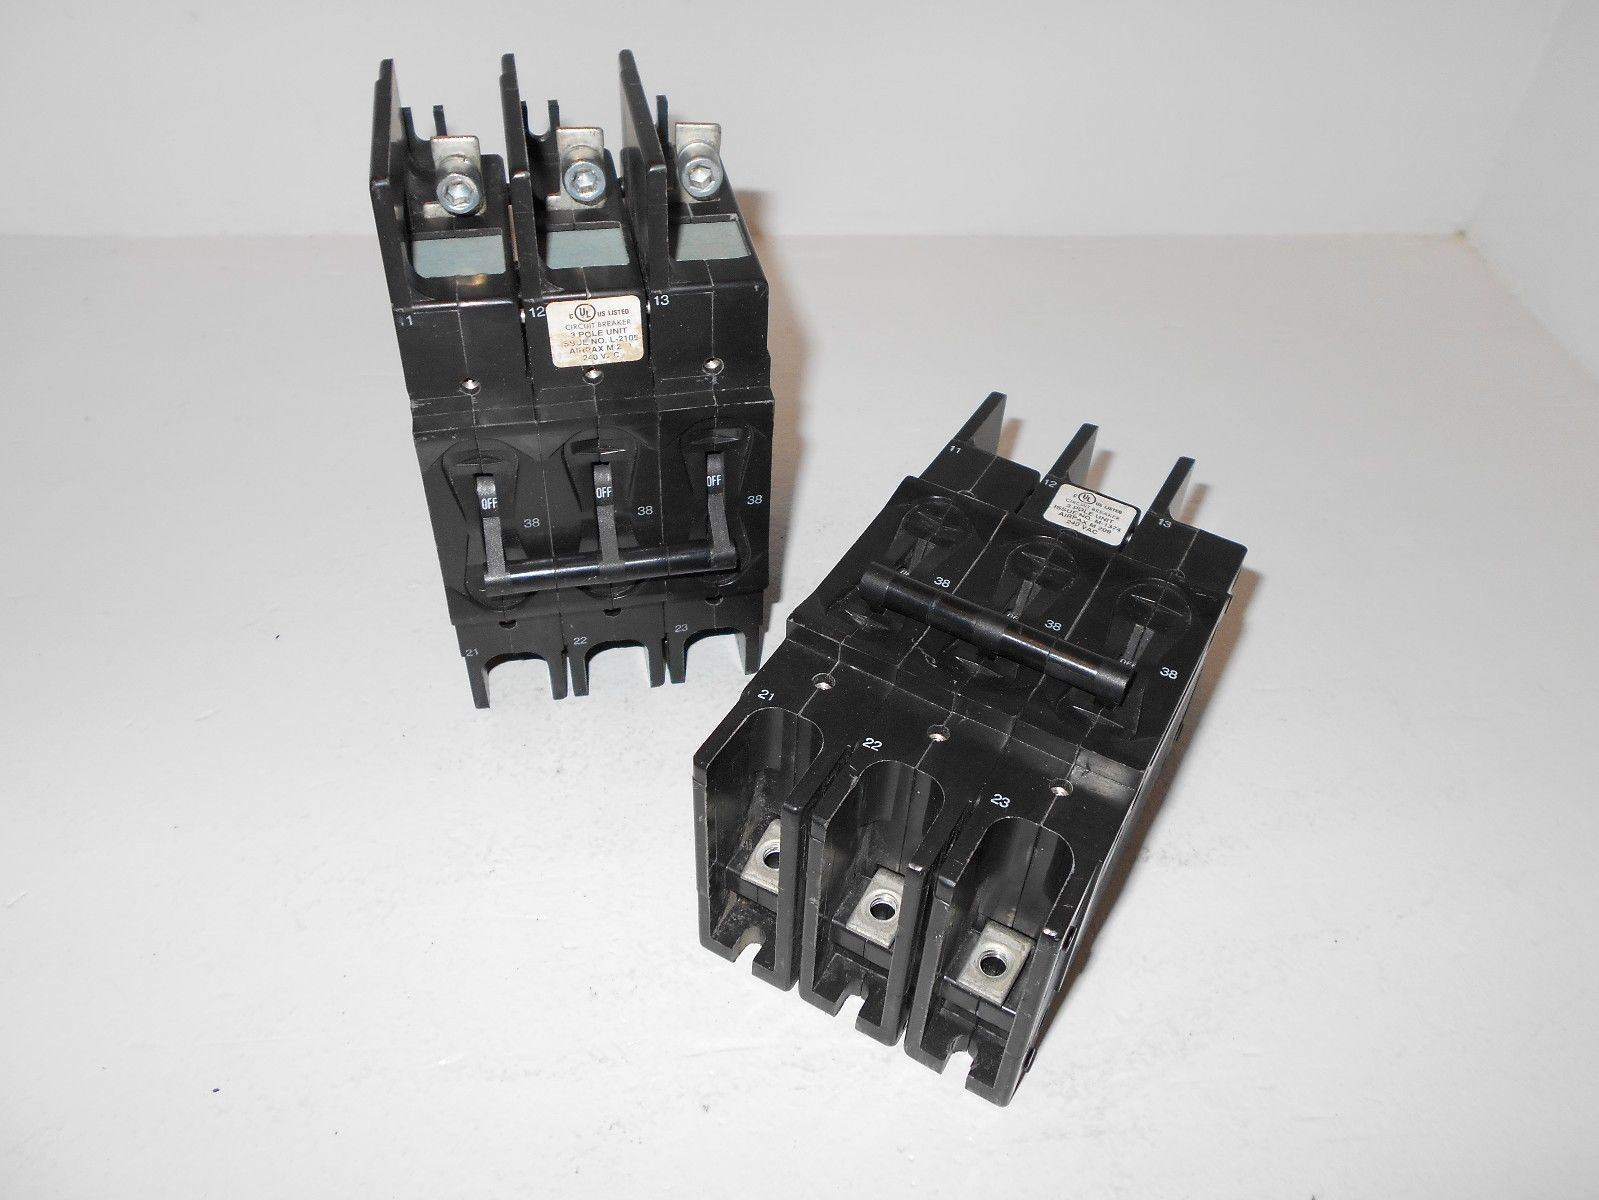 AIRPAX M209 M-209 3 POLE UNIT 38 AMP CIRCUIT BREAKER 209 SERIES 240 ...